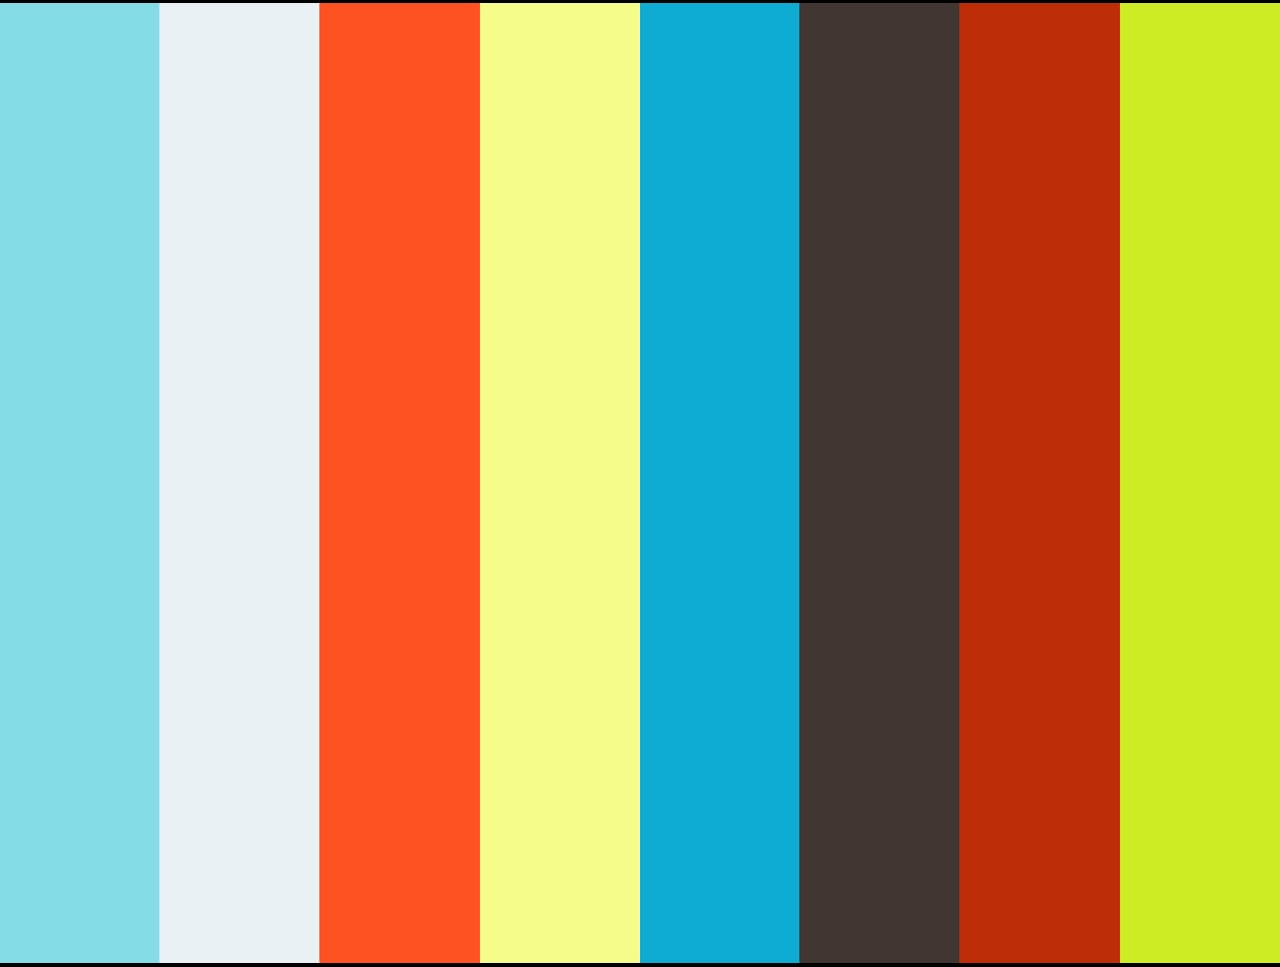 Arabic Letter Poem (MS | Level 2 & 3)